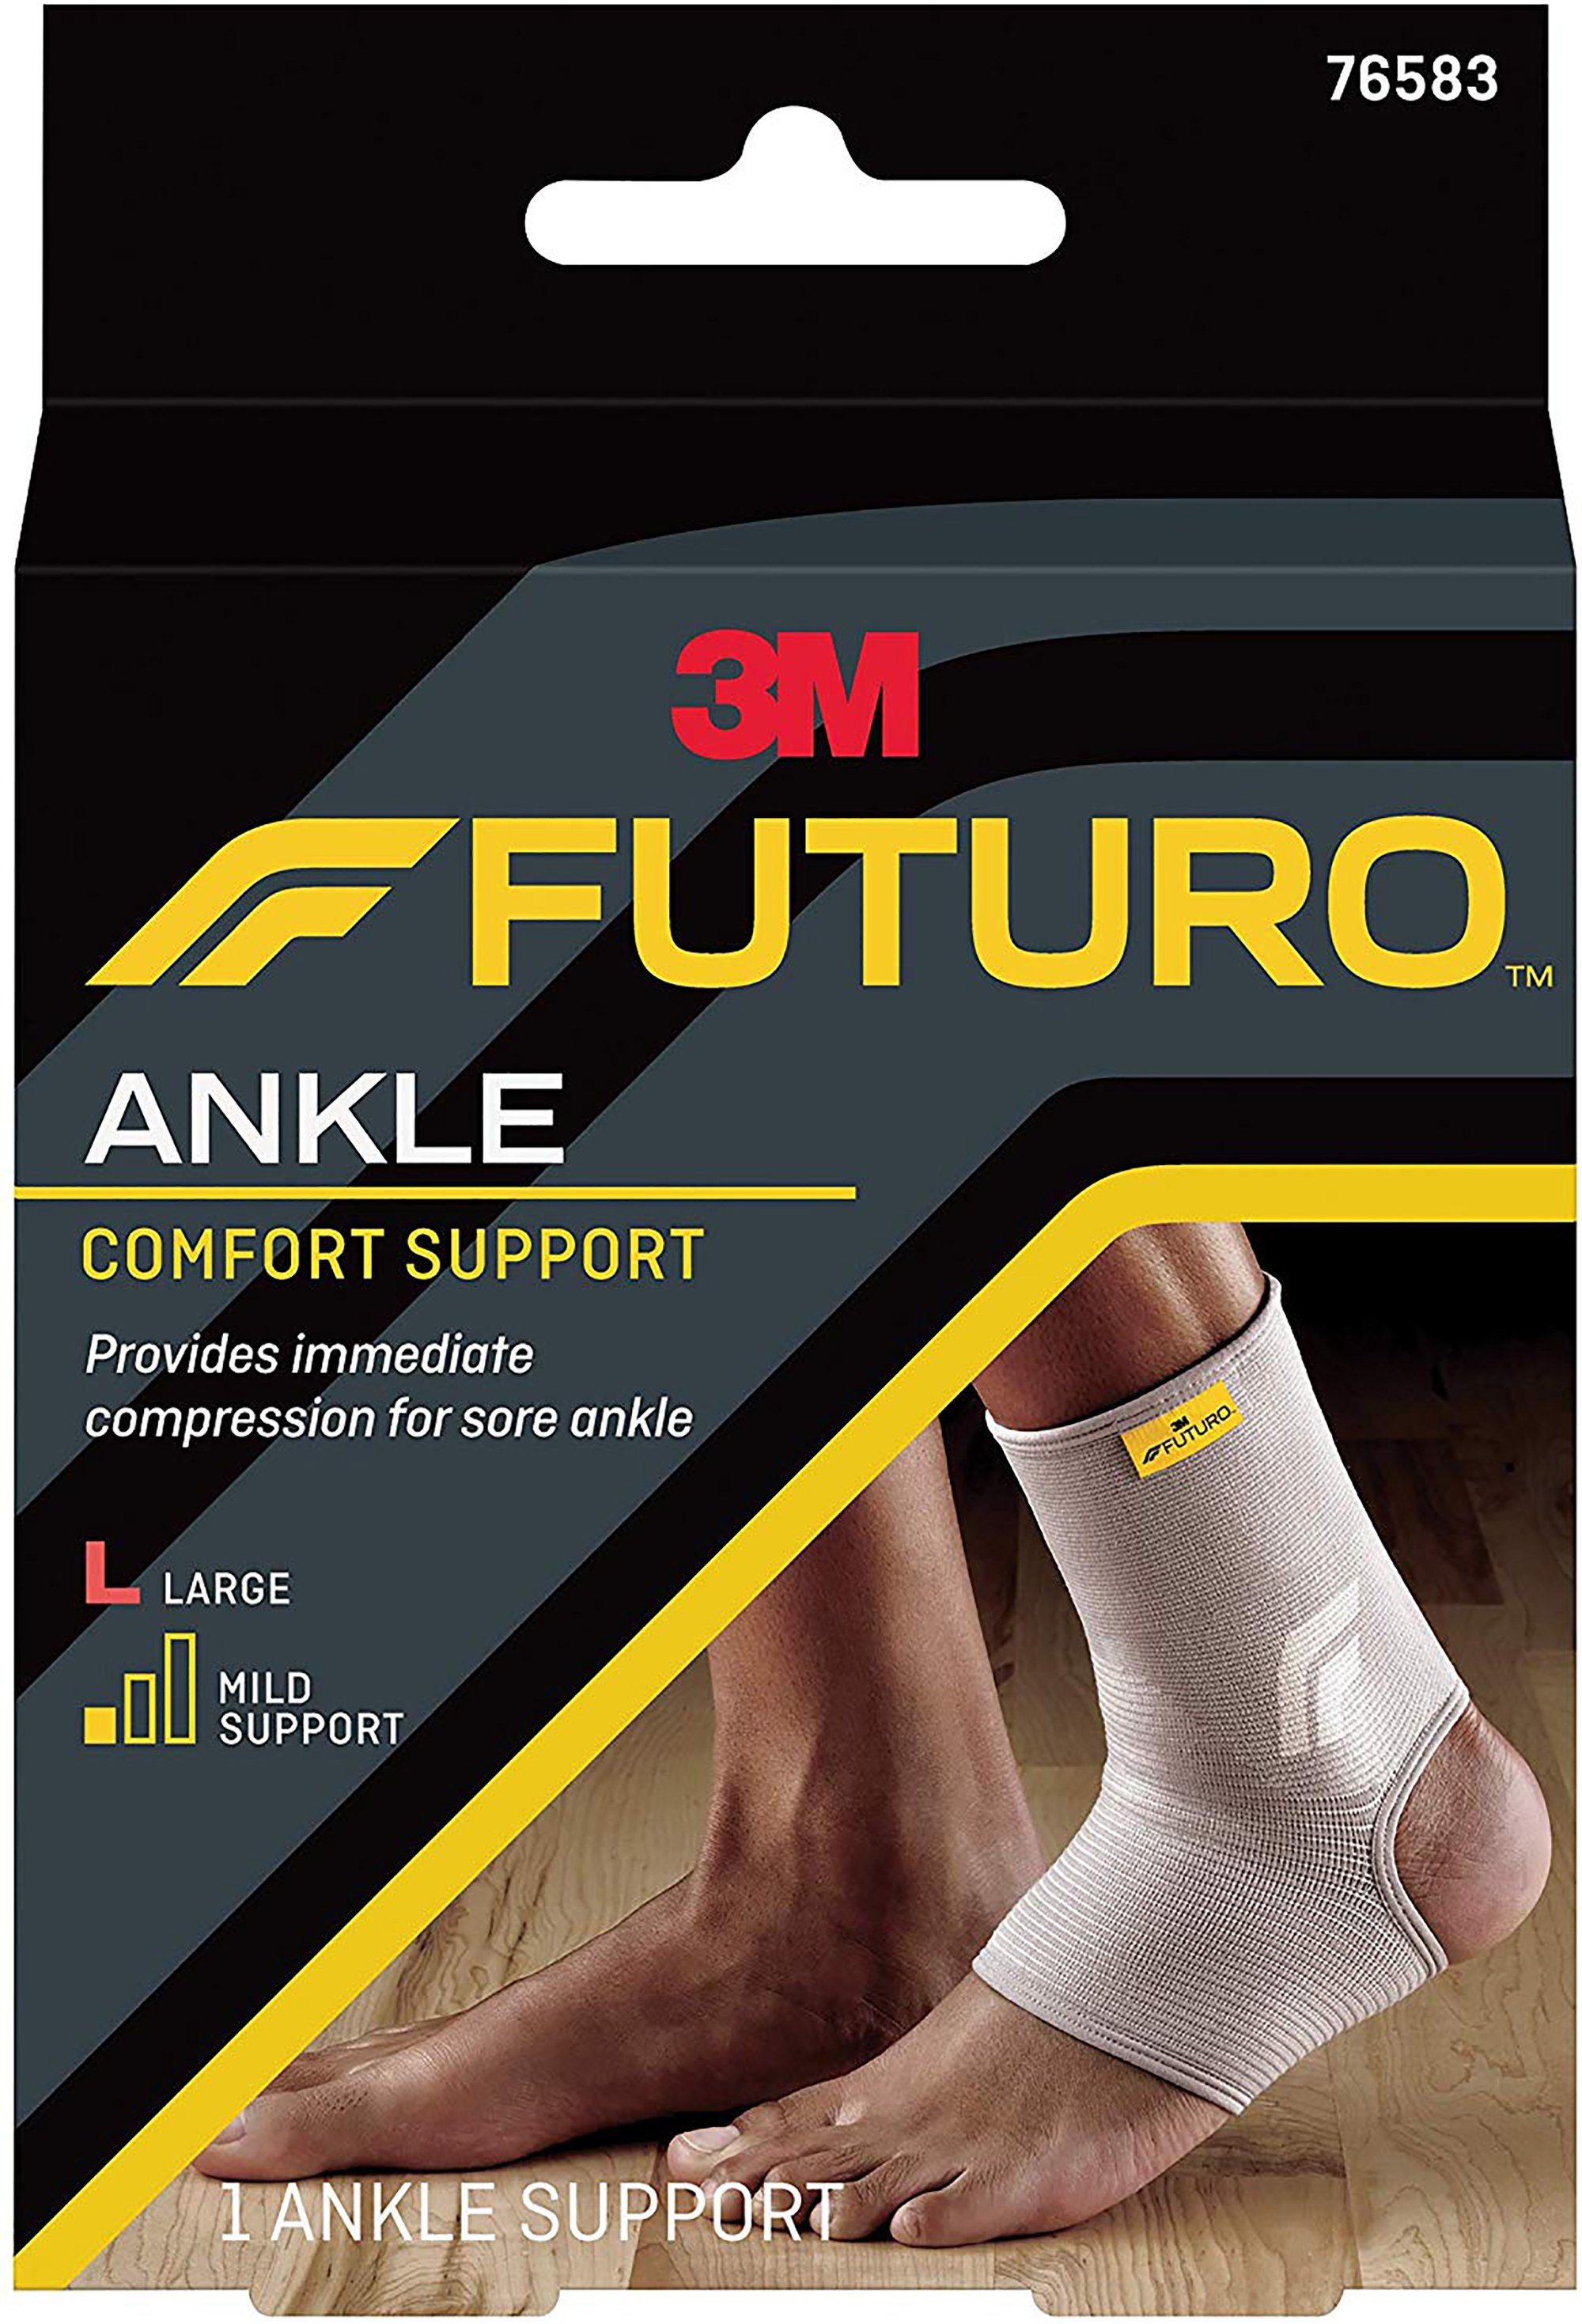 3M Futuro Ankle Comfort Support, 76583ENR, Large - Box of 3